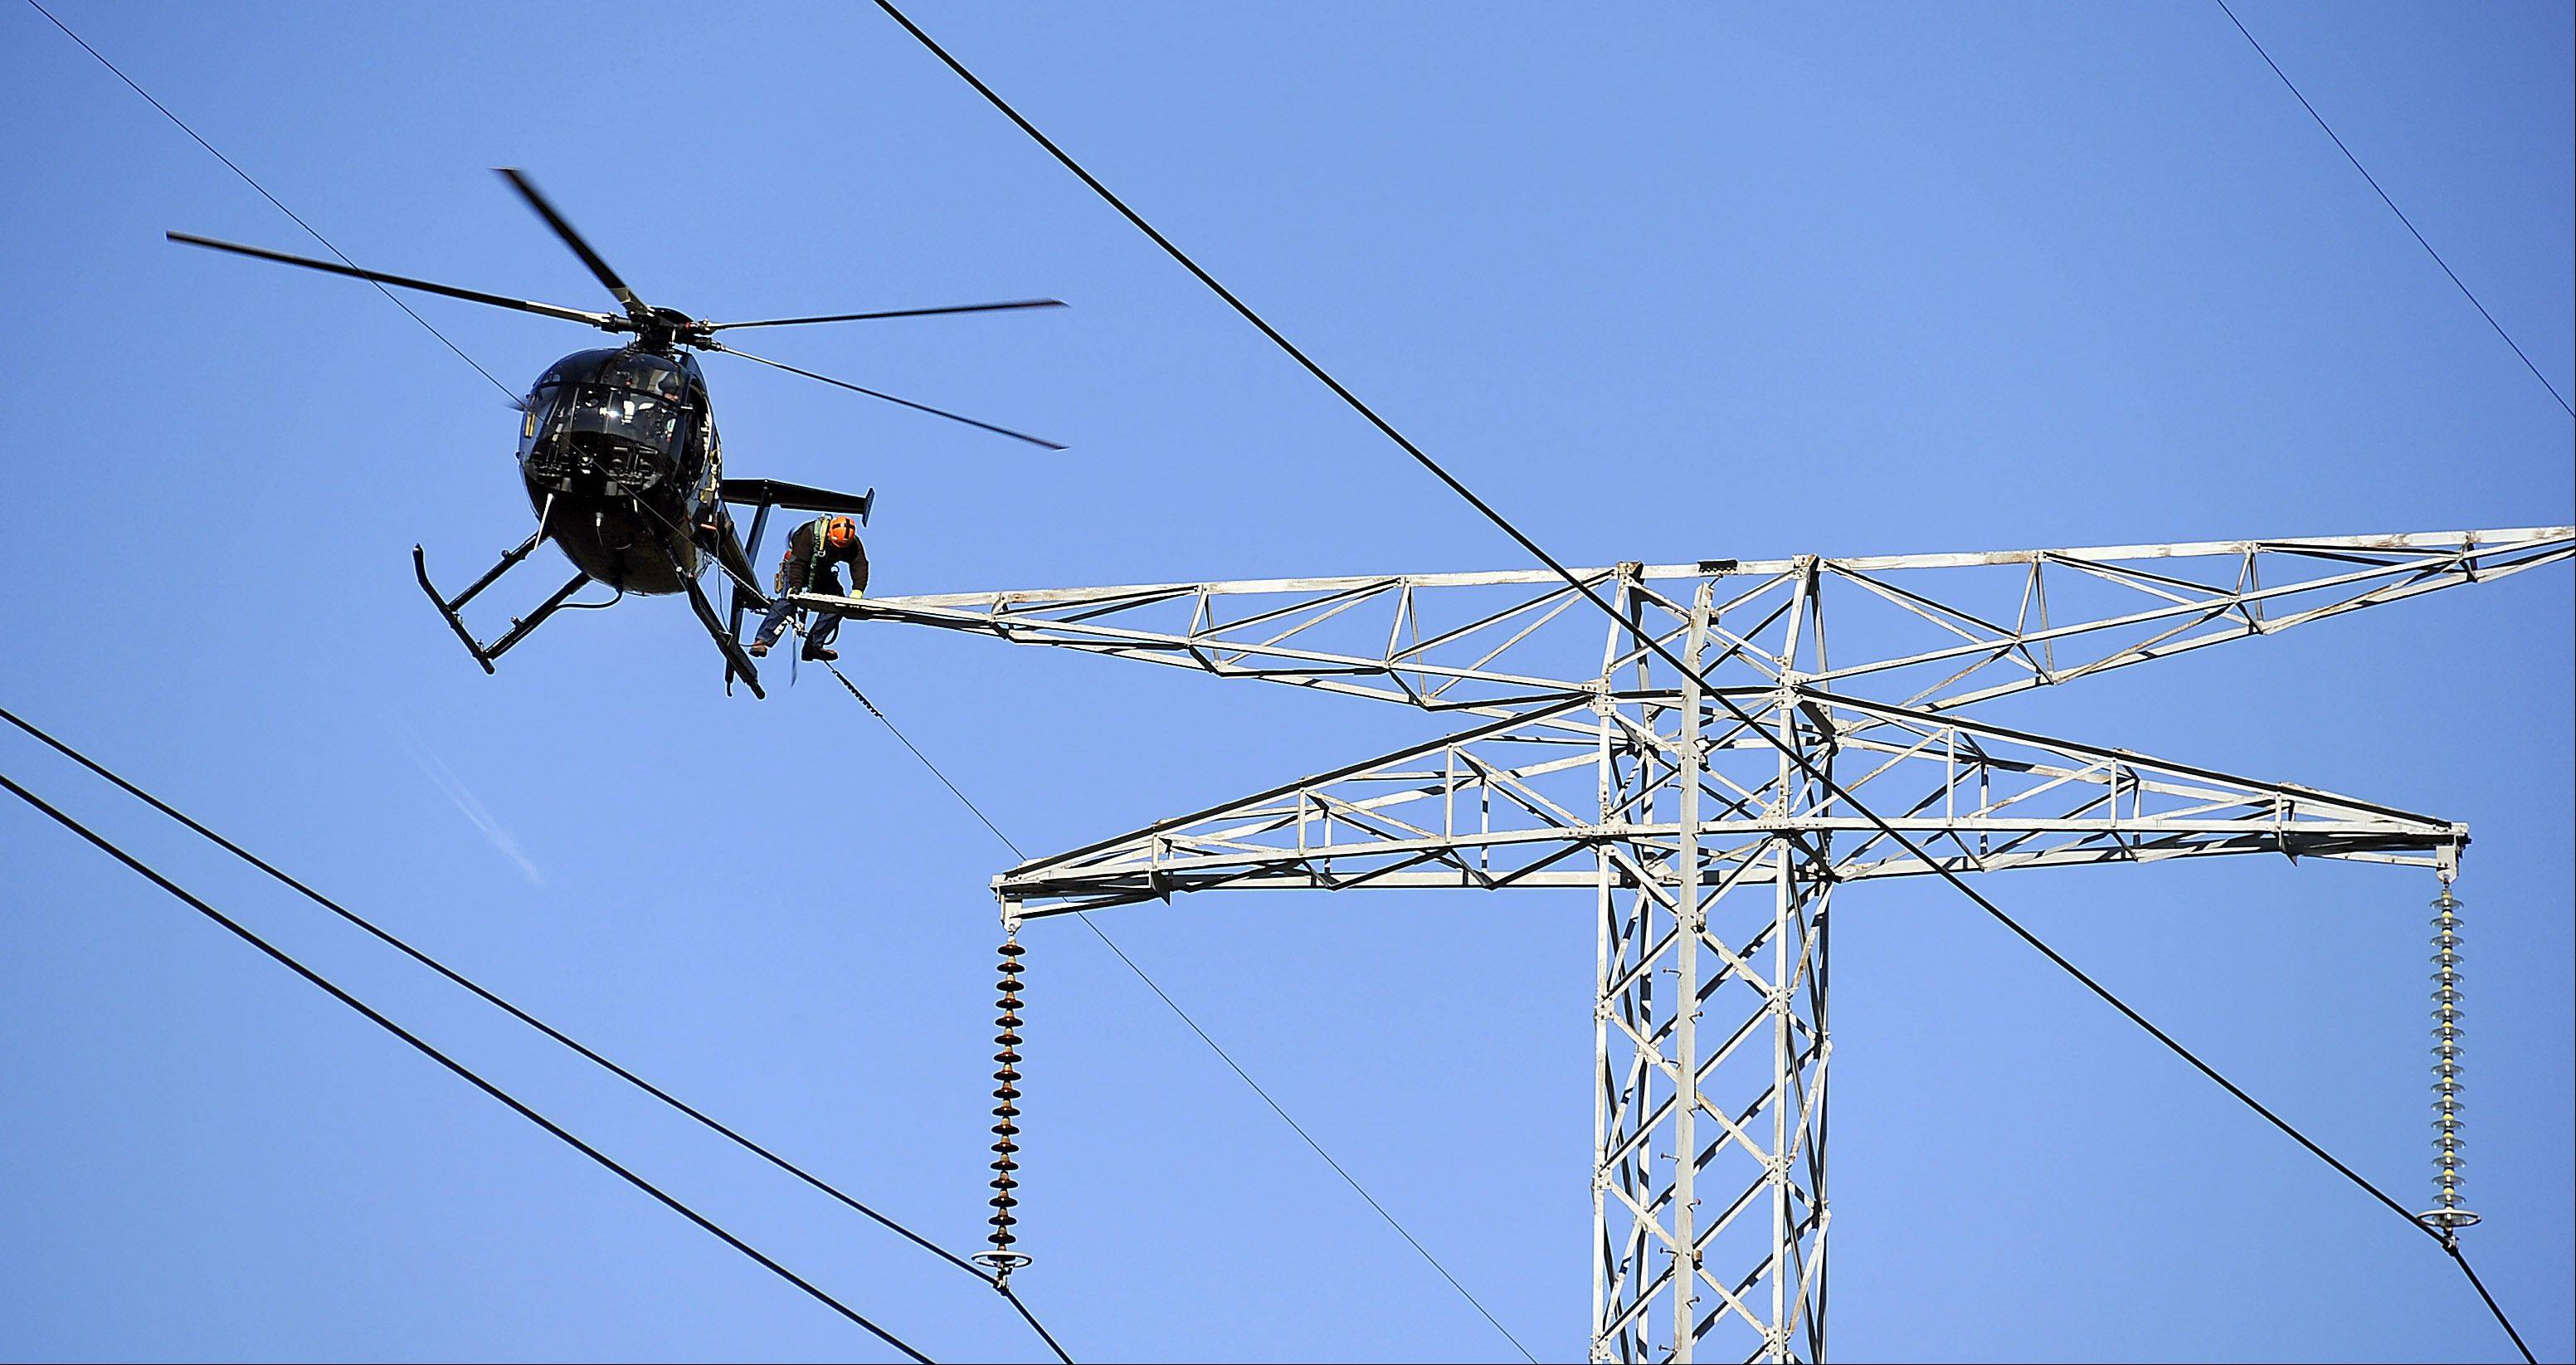 Pilot Brian Anderson positions himself inches above the 130 foot electrical tower so ComEd overhead electrician Ron Kellett can climb into the helicopter after changing porcelain insulators for new glass insulators.